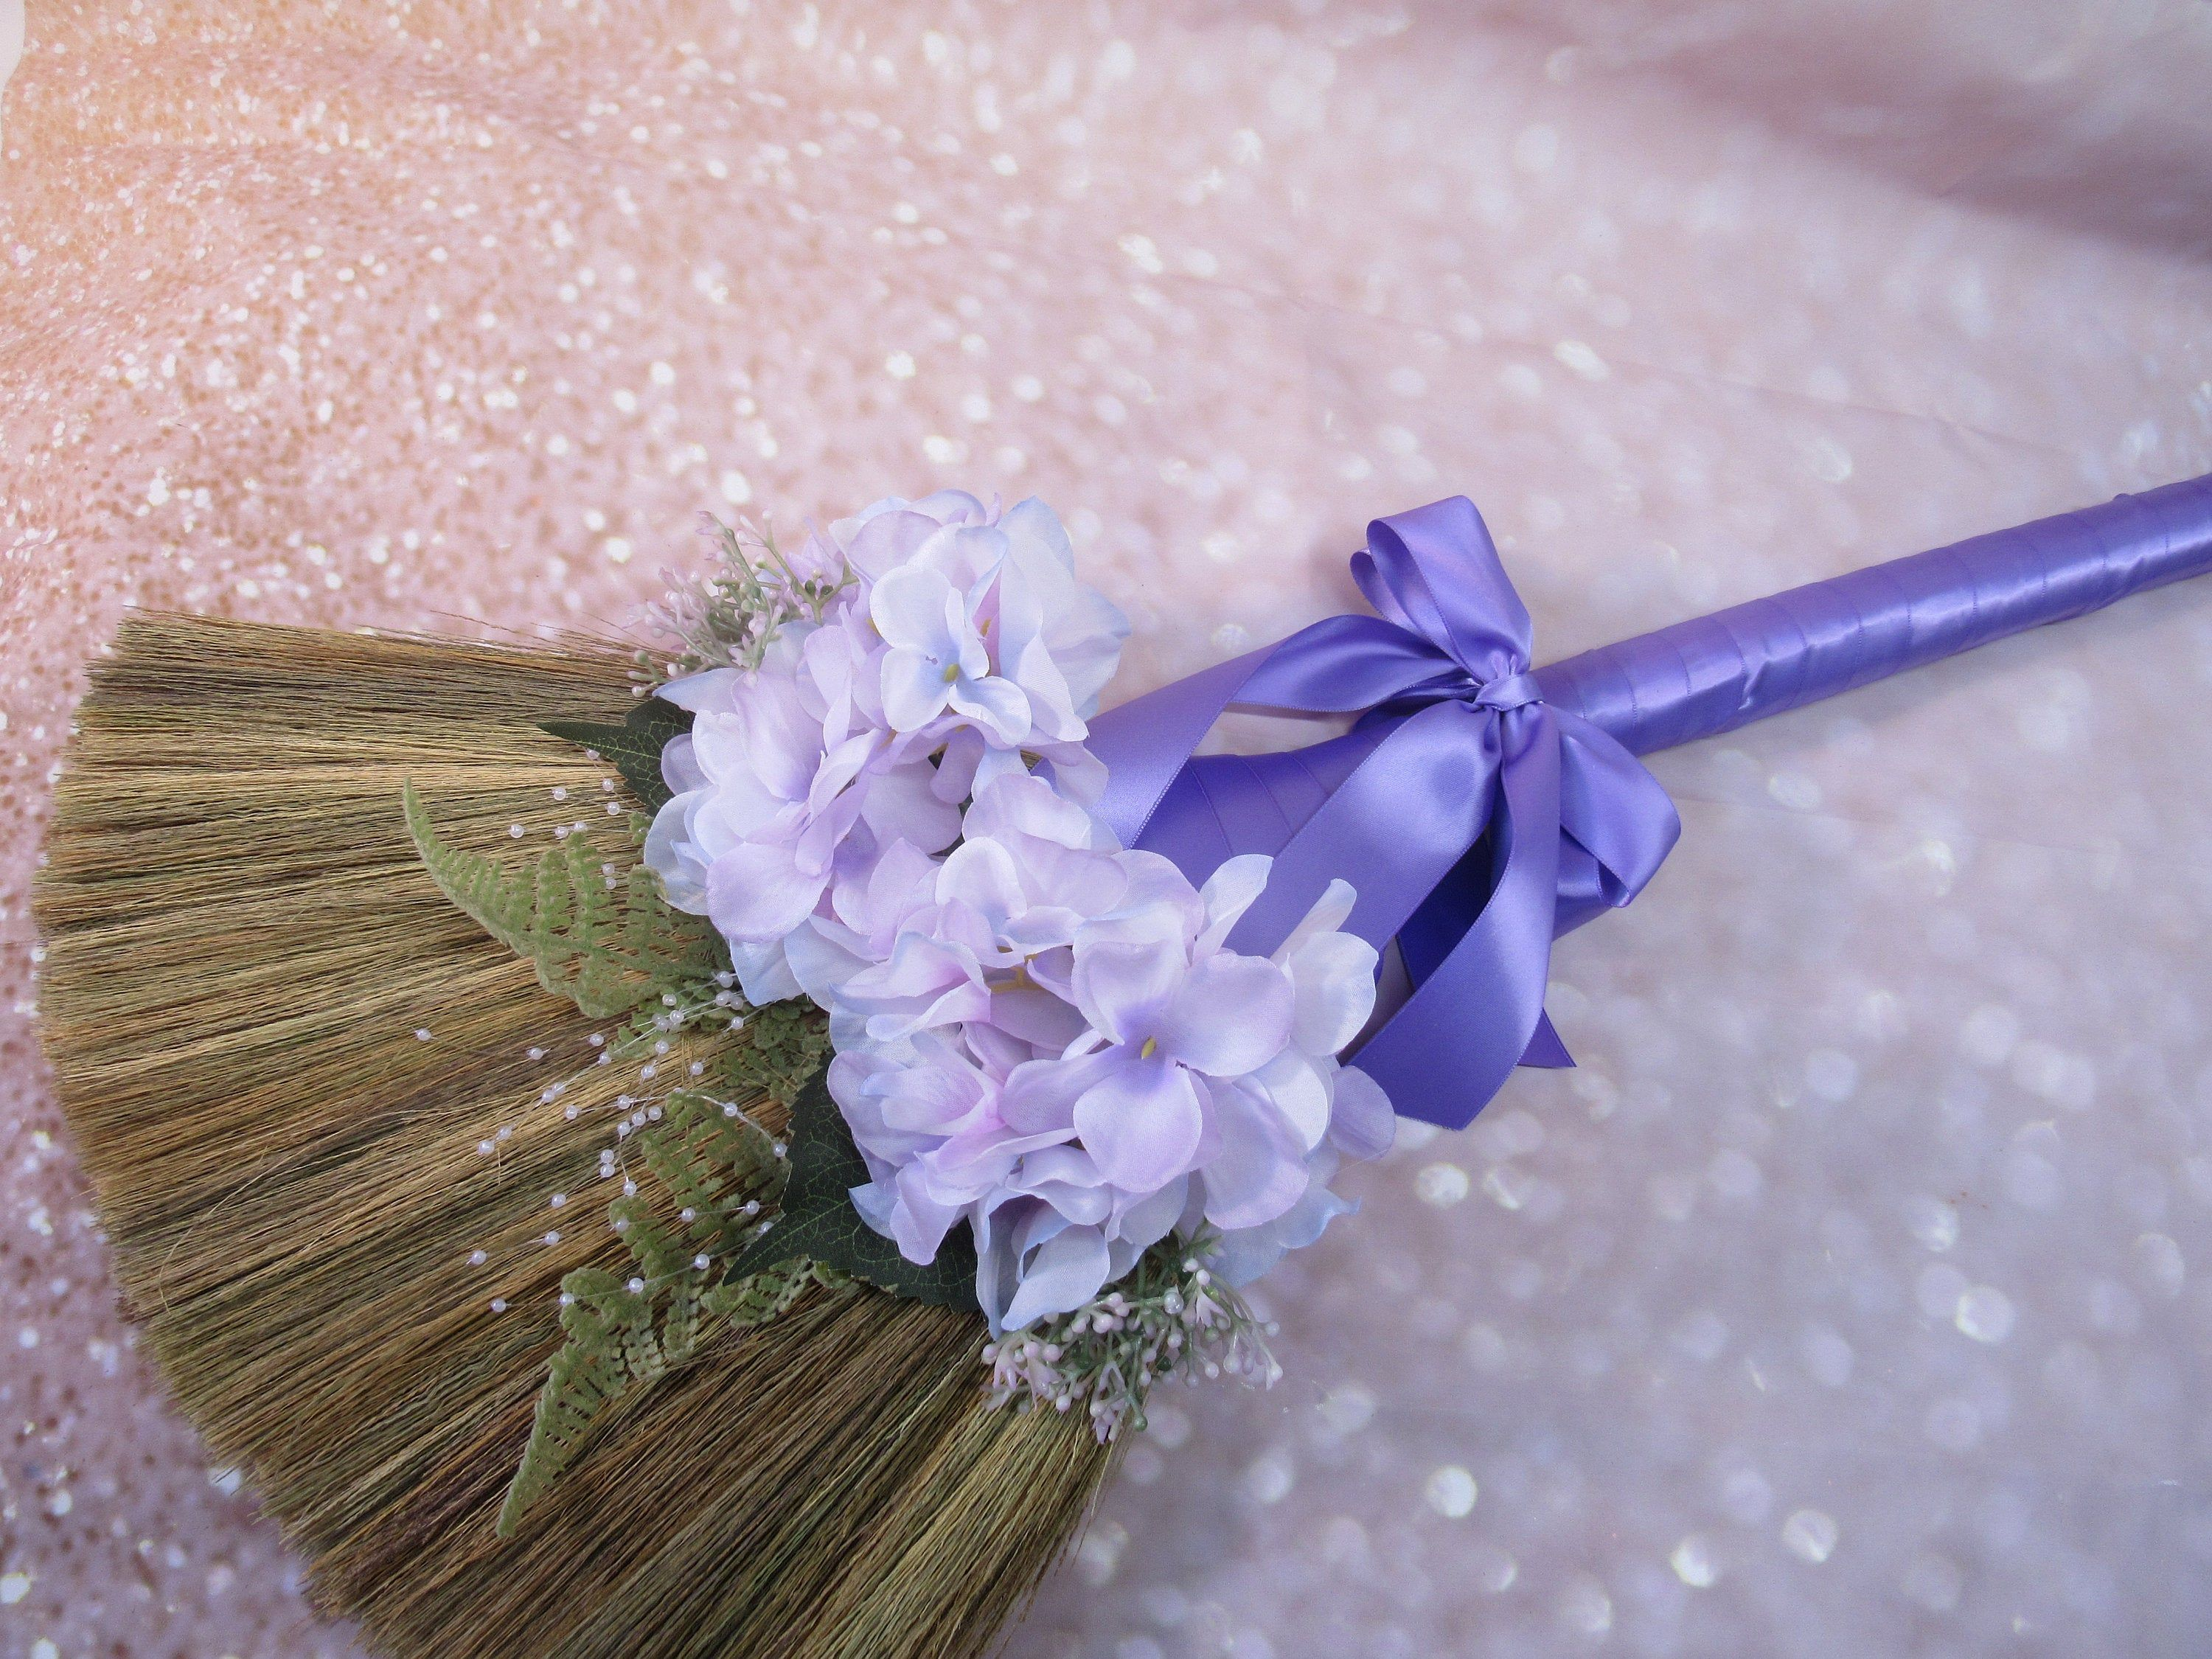 Decorated Jump Broom With Hydrangea Flowers For Jumping The Broom Ceremony Light Purple Ribbon Please Read Ad For Details In 2020 With Images Hydrangea Flower Purple Ribbon Light Purple Flowers